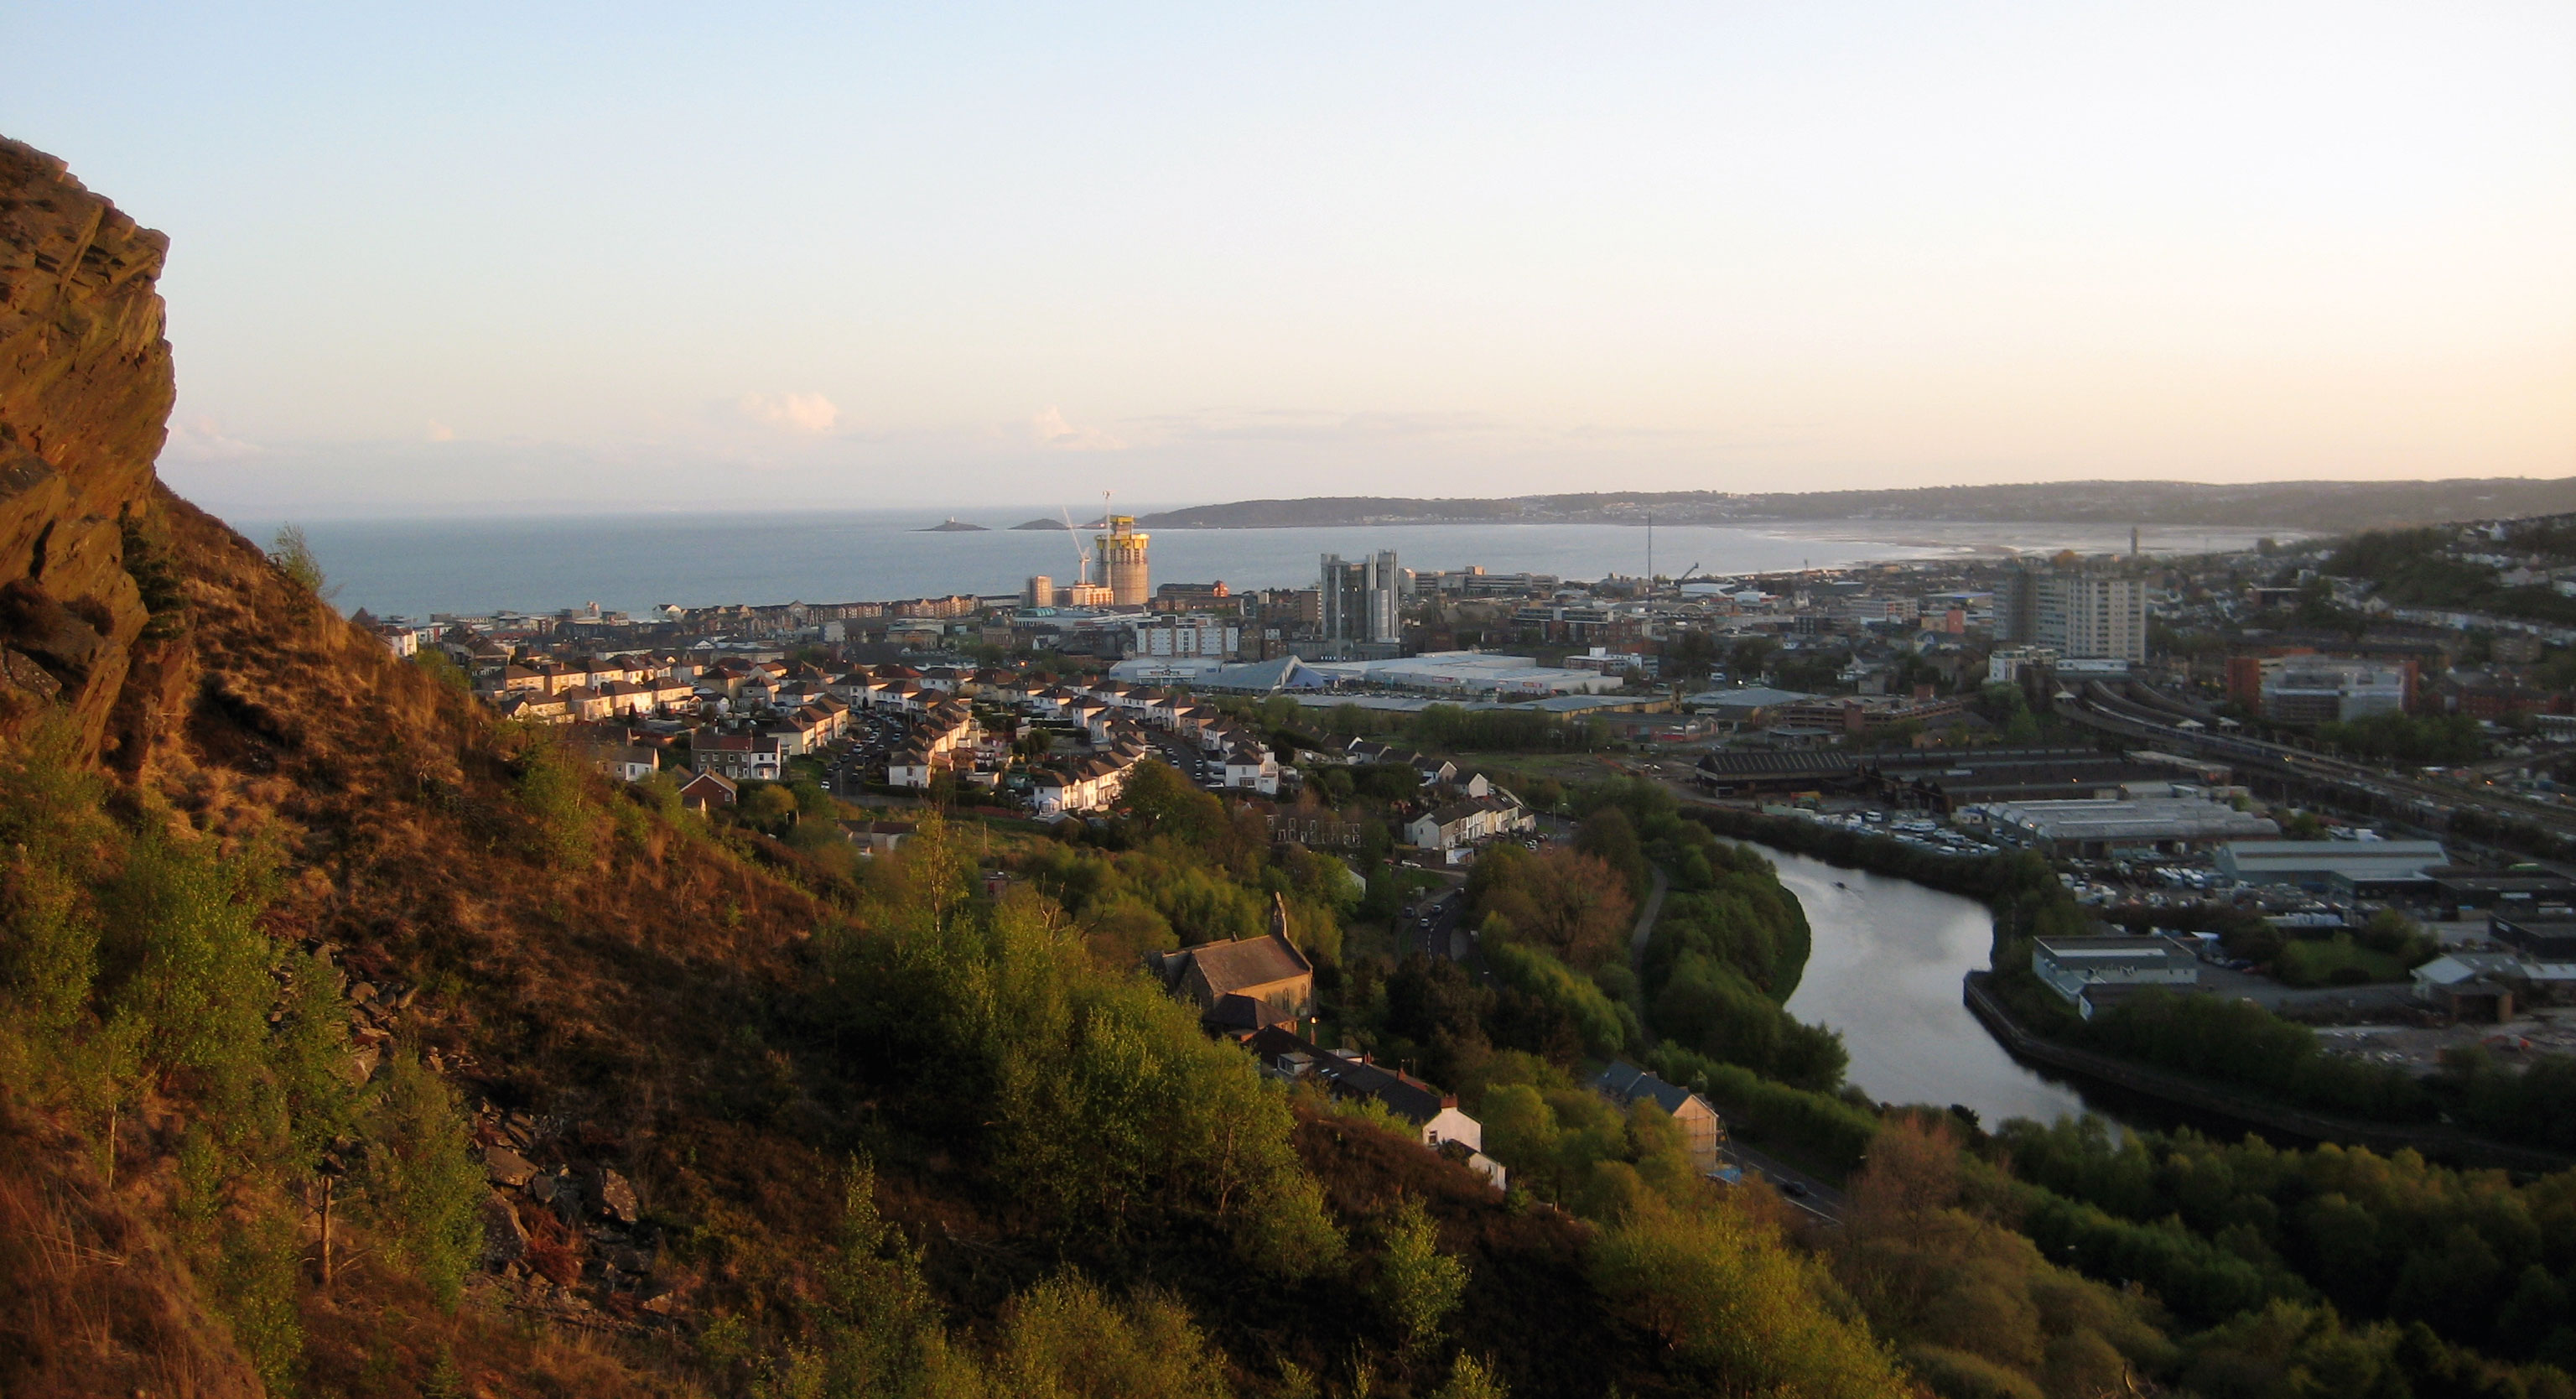 Swansea United Kingdom  city photos gallery : Swansea from kilvey hill